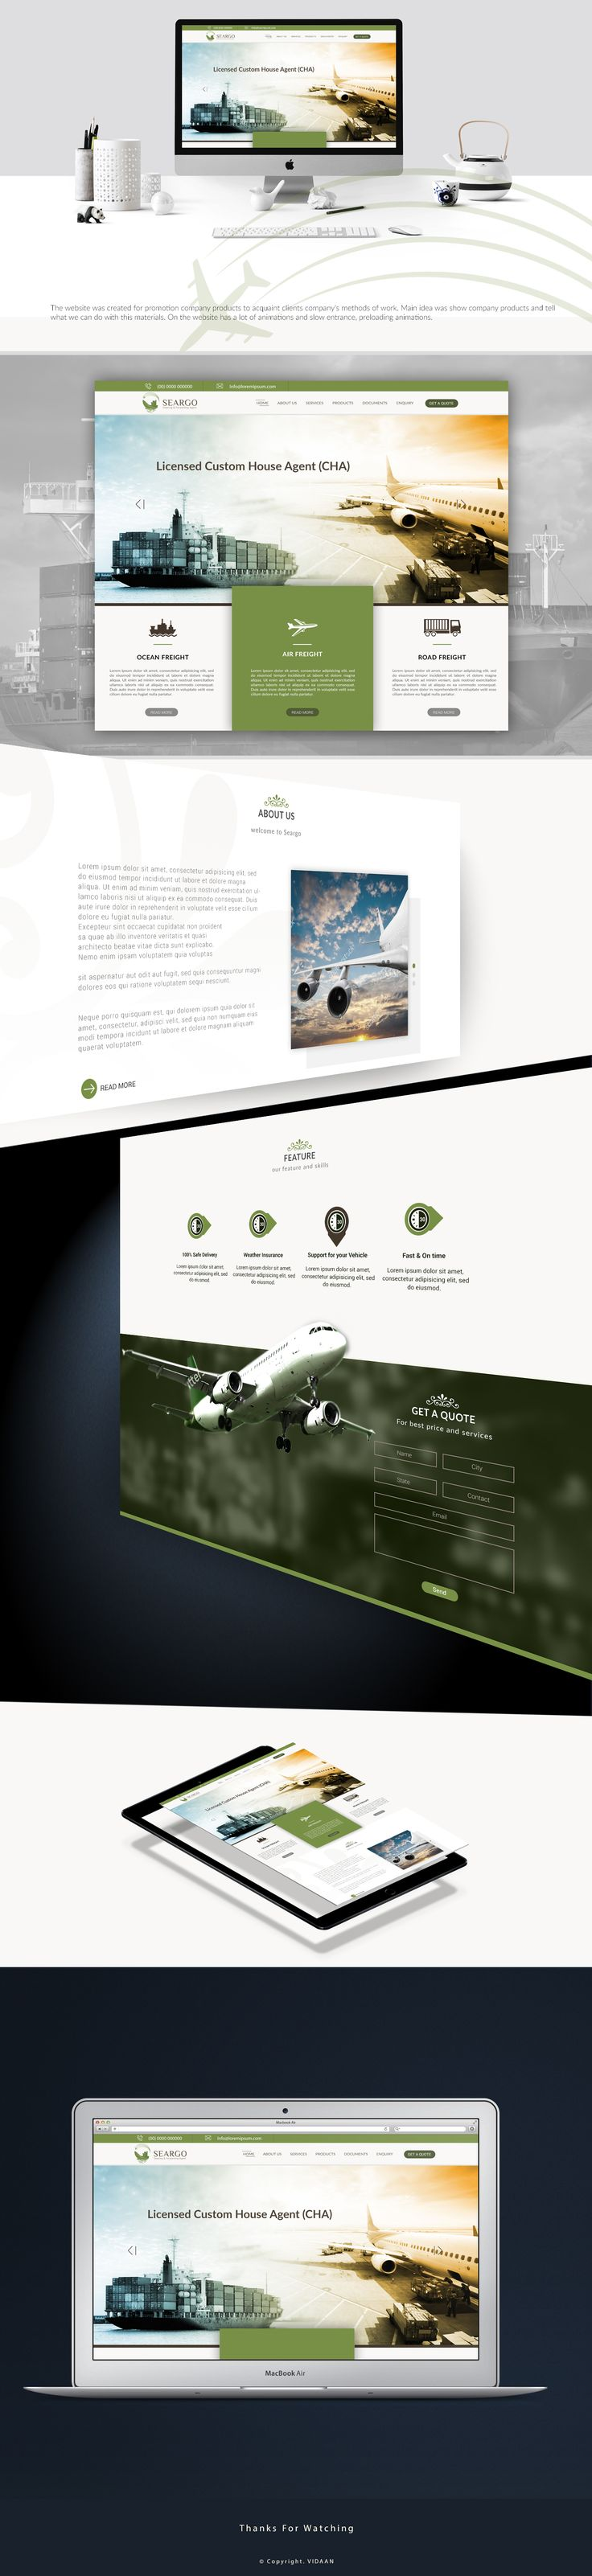 "Check out this @Behance project: ""Seargo's Landing Page Design"" https://www.behance.net/gallery/48164225/Seargos-Landing-Page-Design"